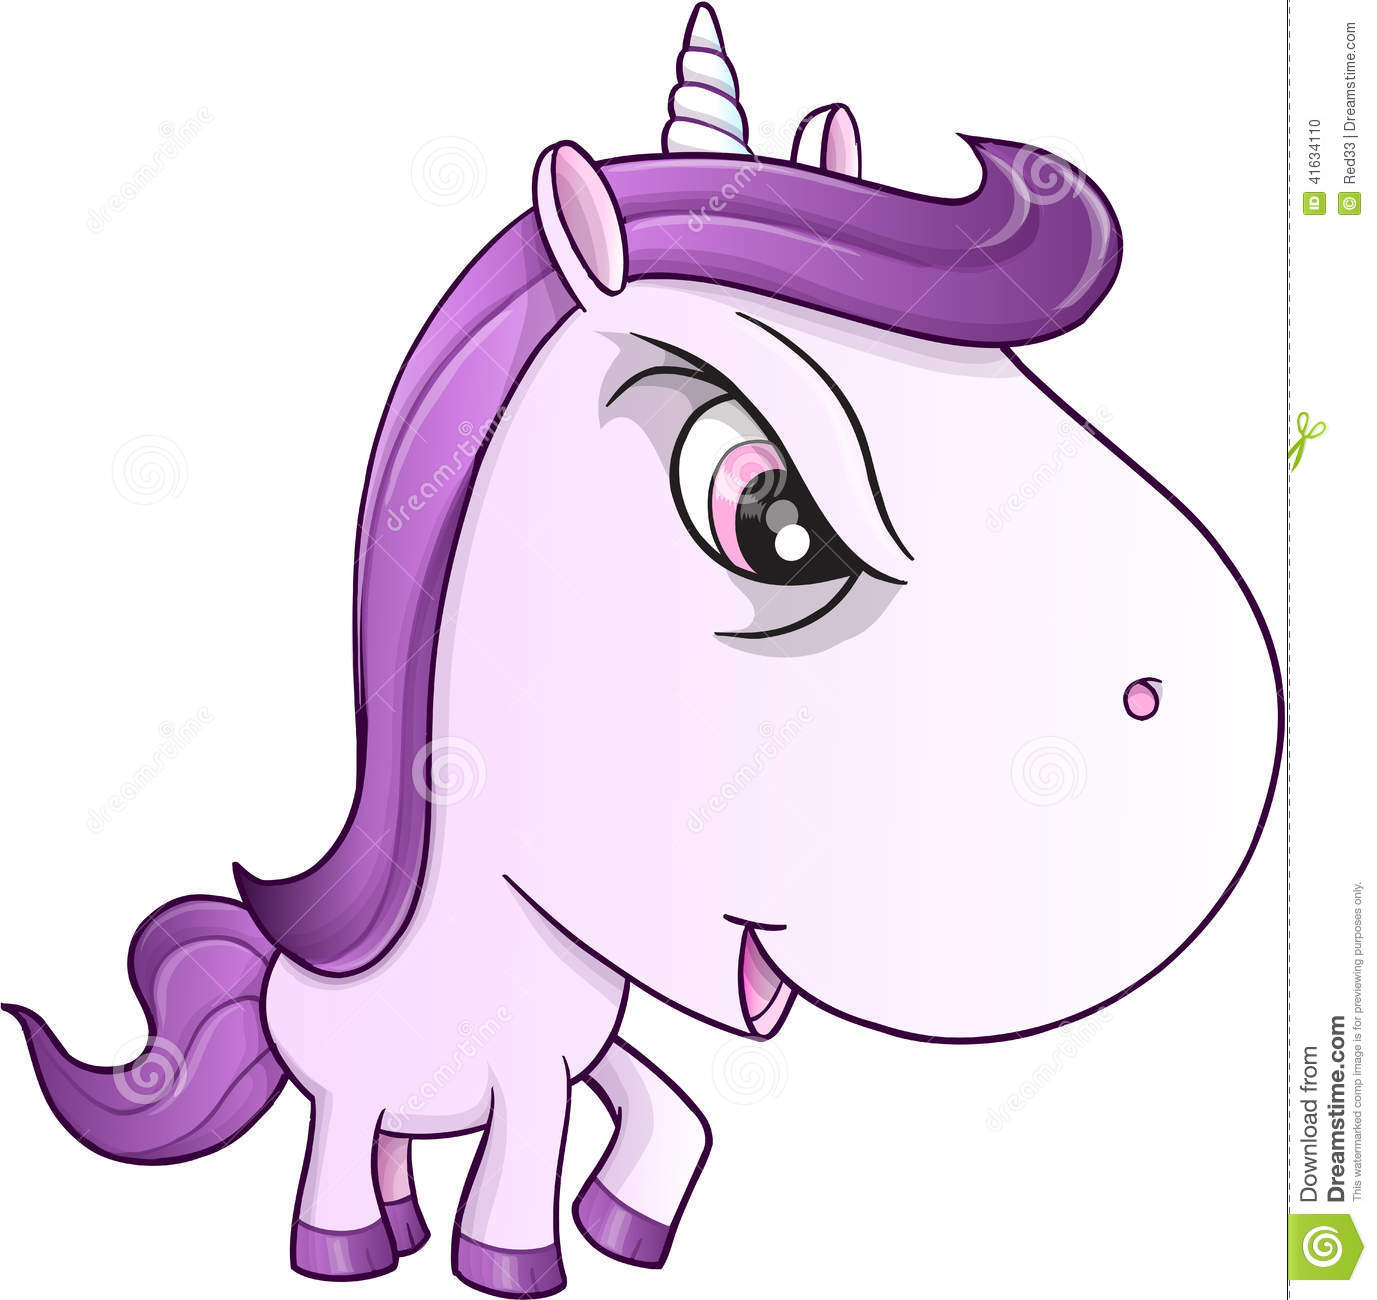 Angry Mean Unicorn Pony Vector Stock Vector - Image: 41634110